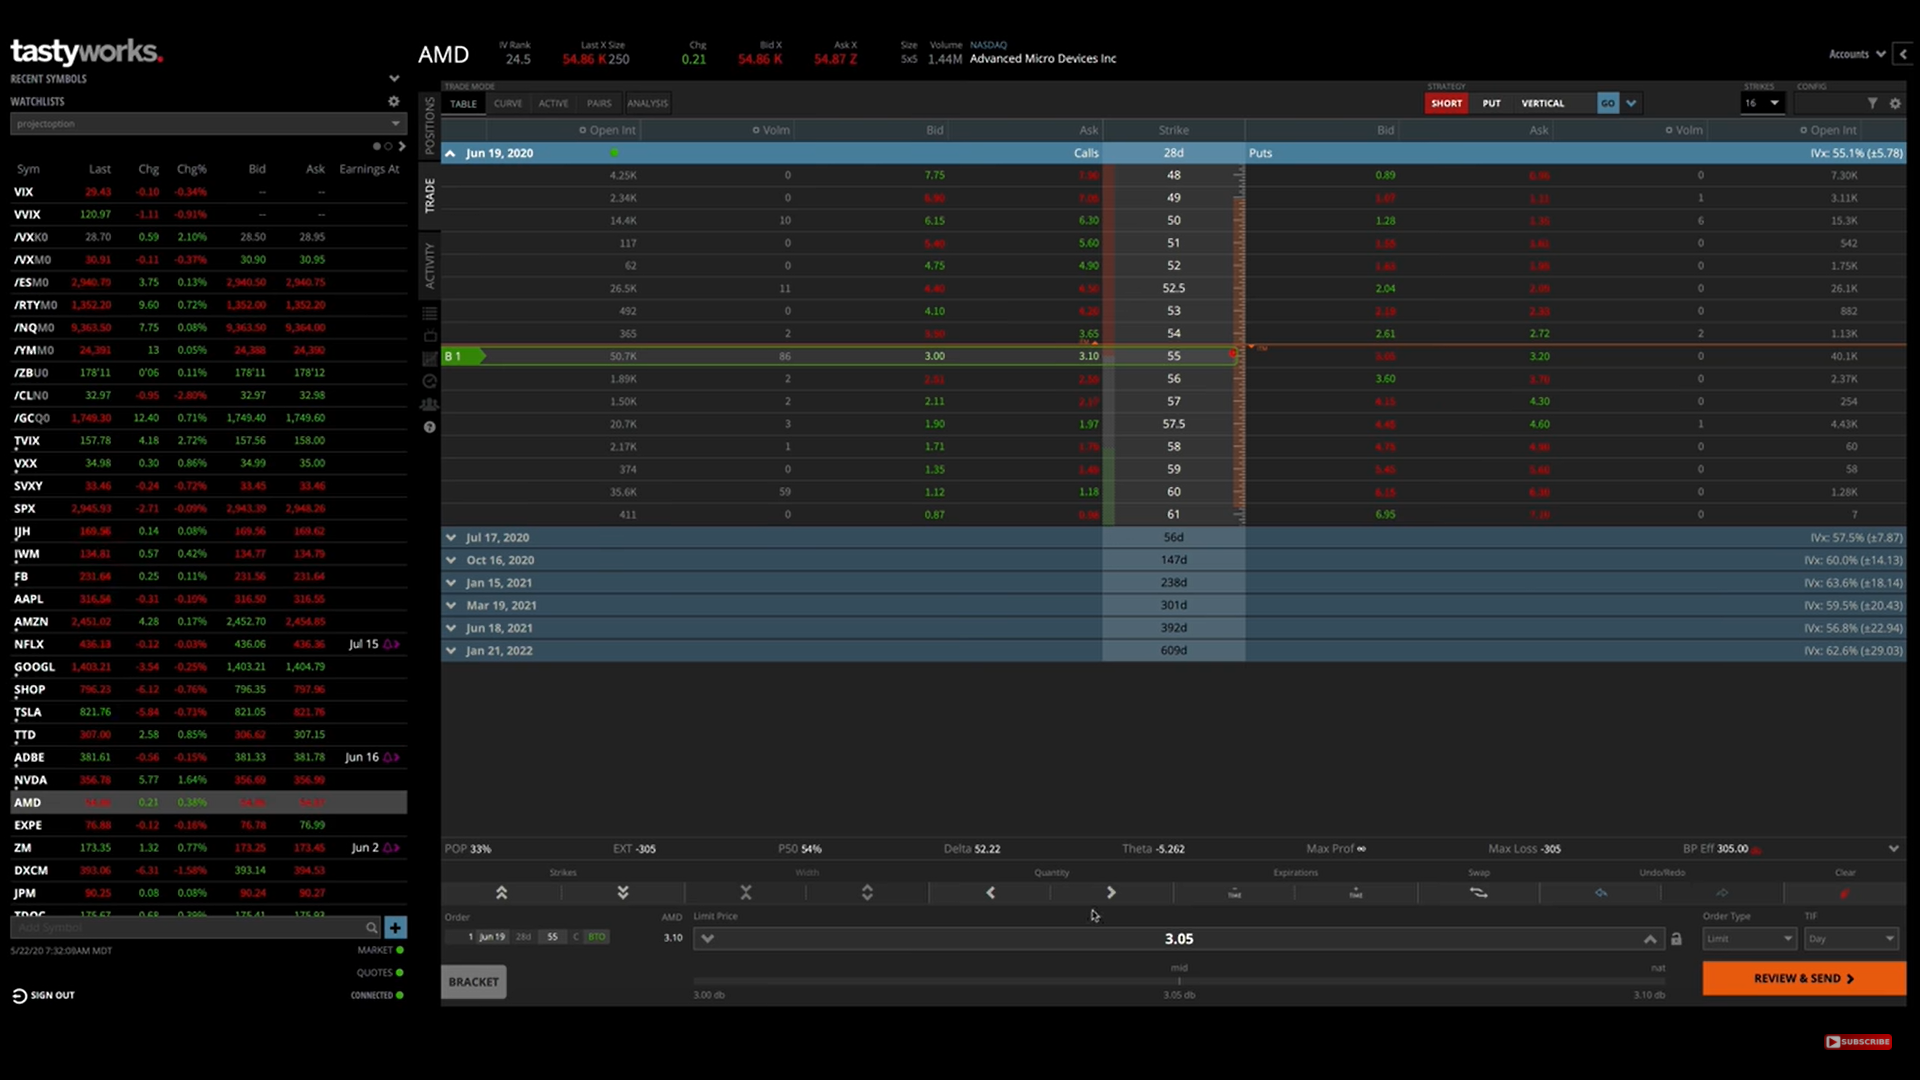 How to trade put options with tastyworks